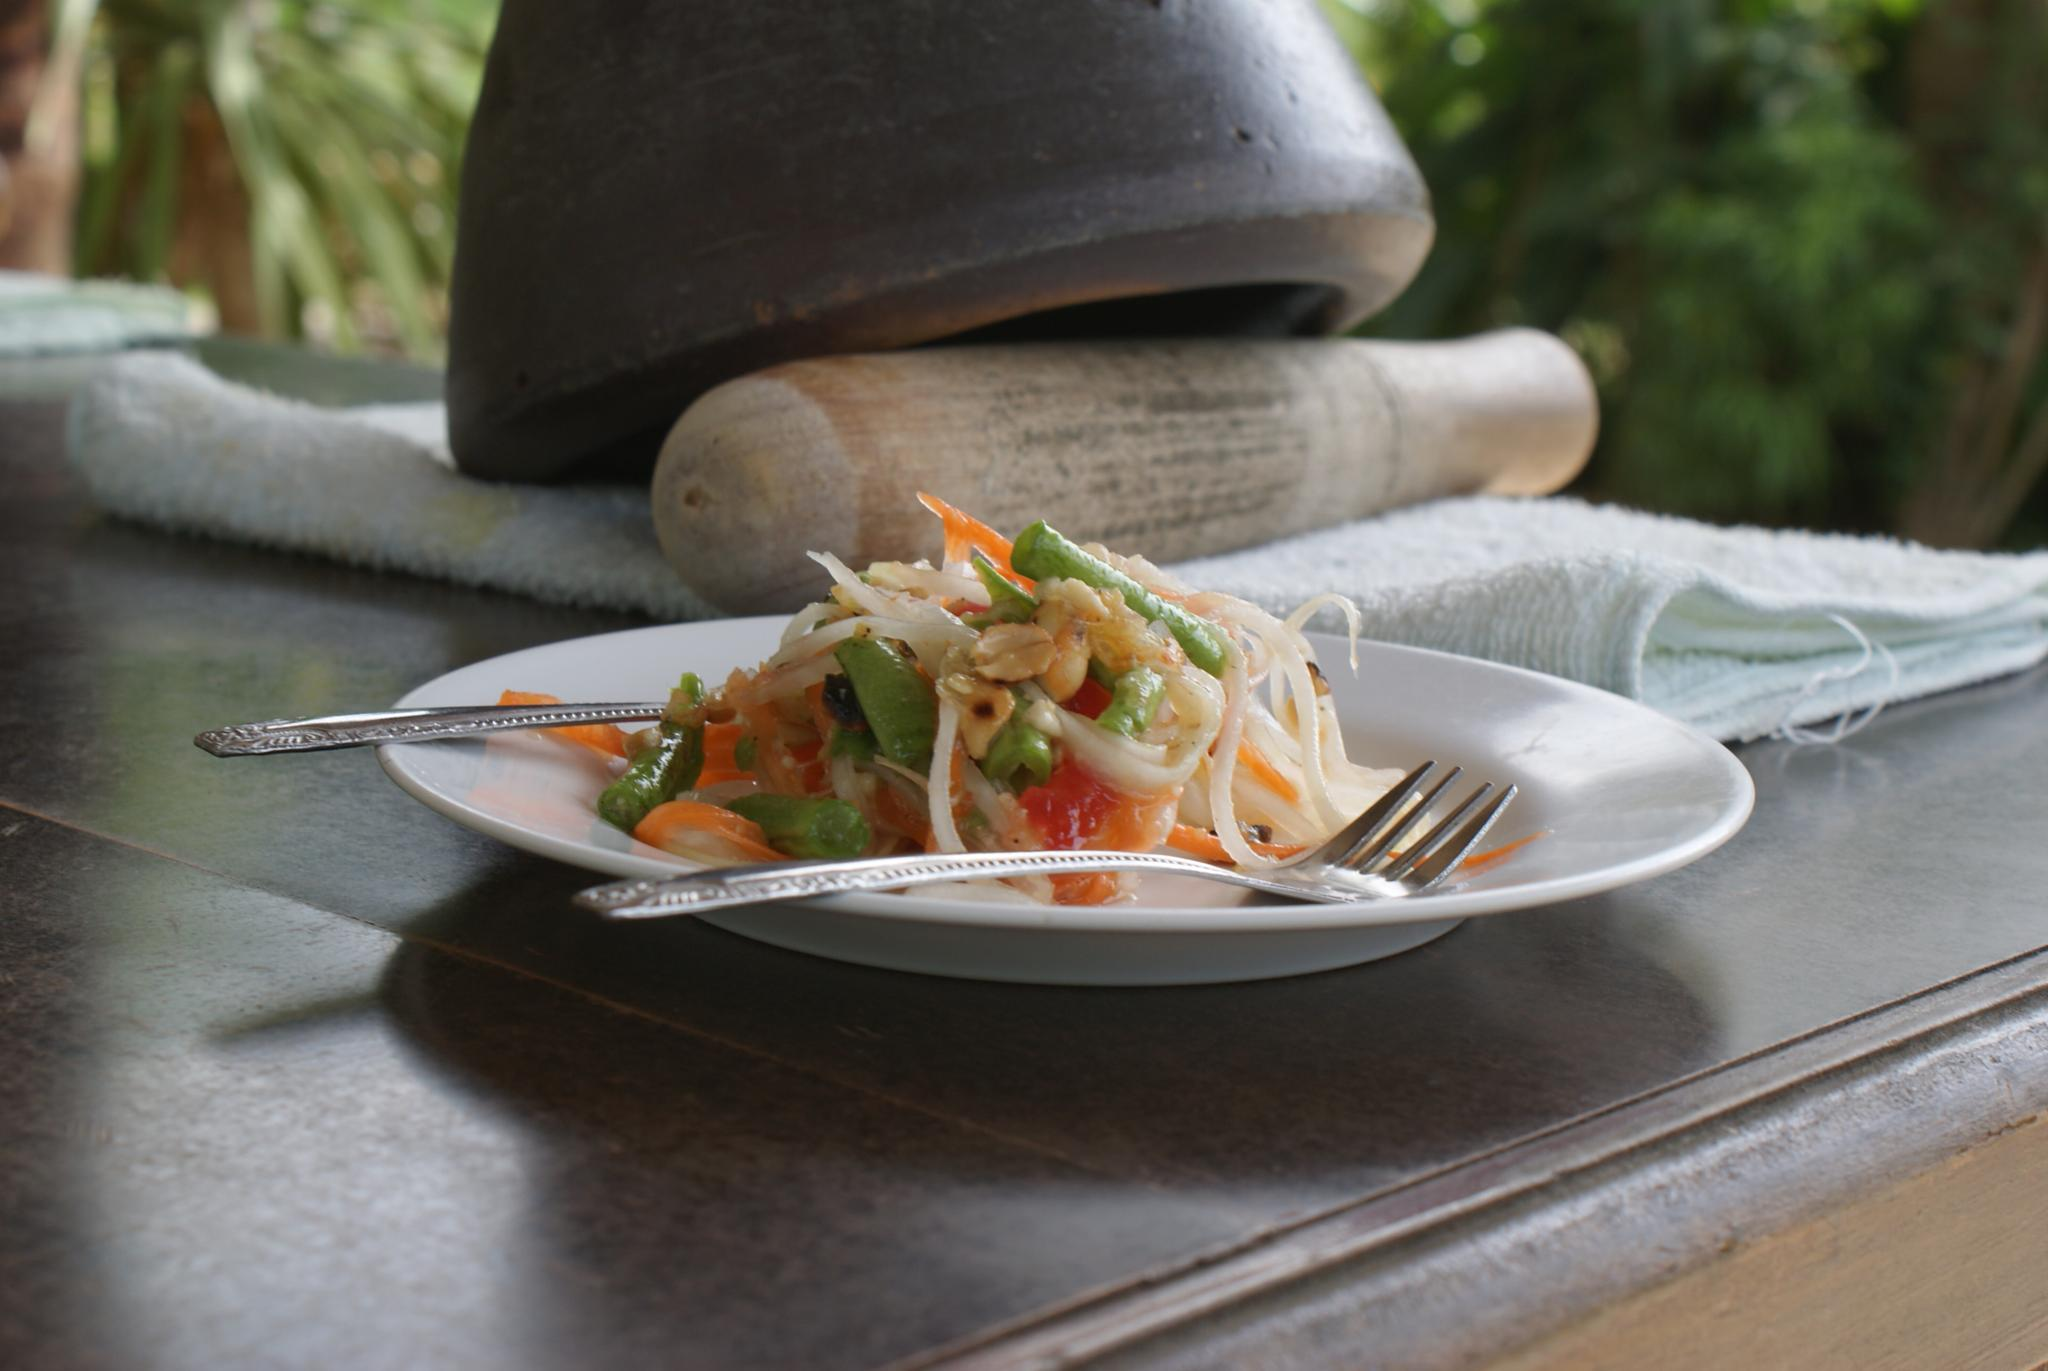 Food from Thailand by Camilla Söderlin